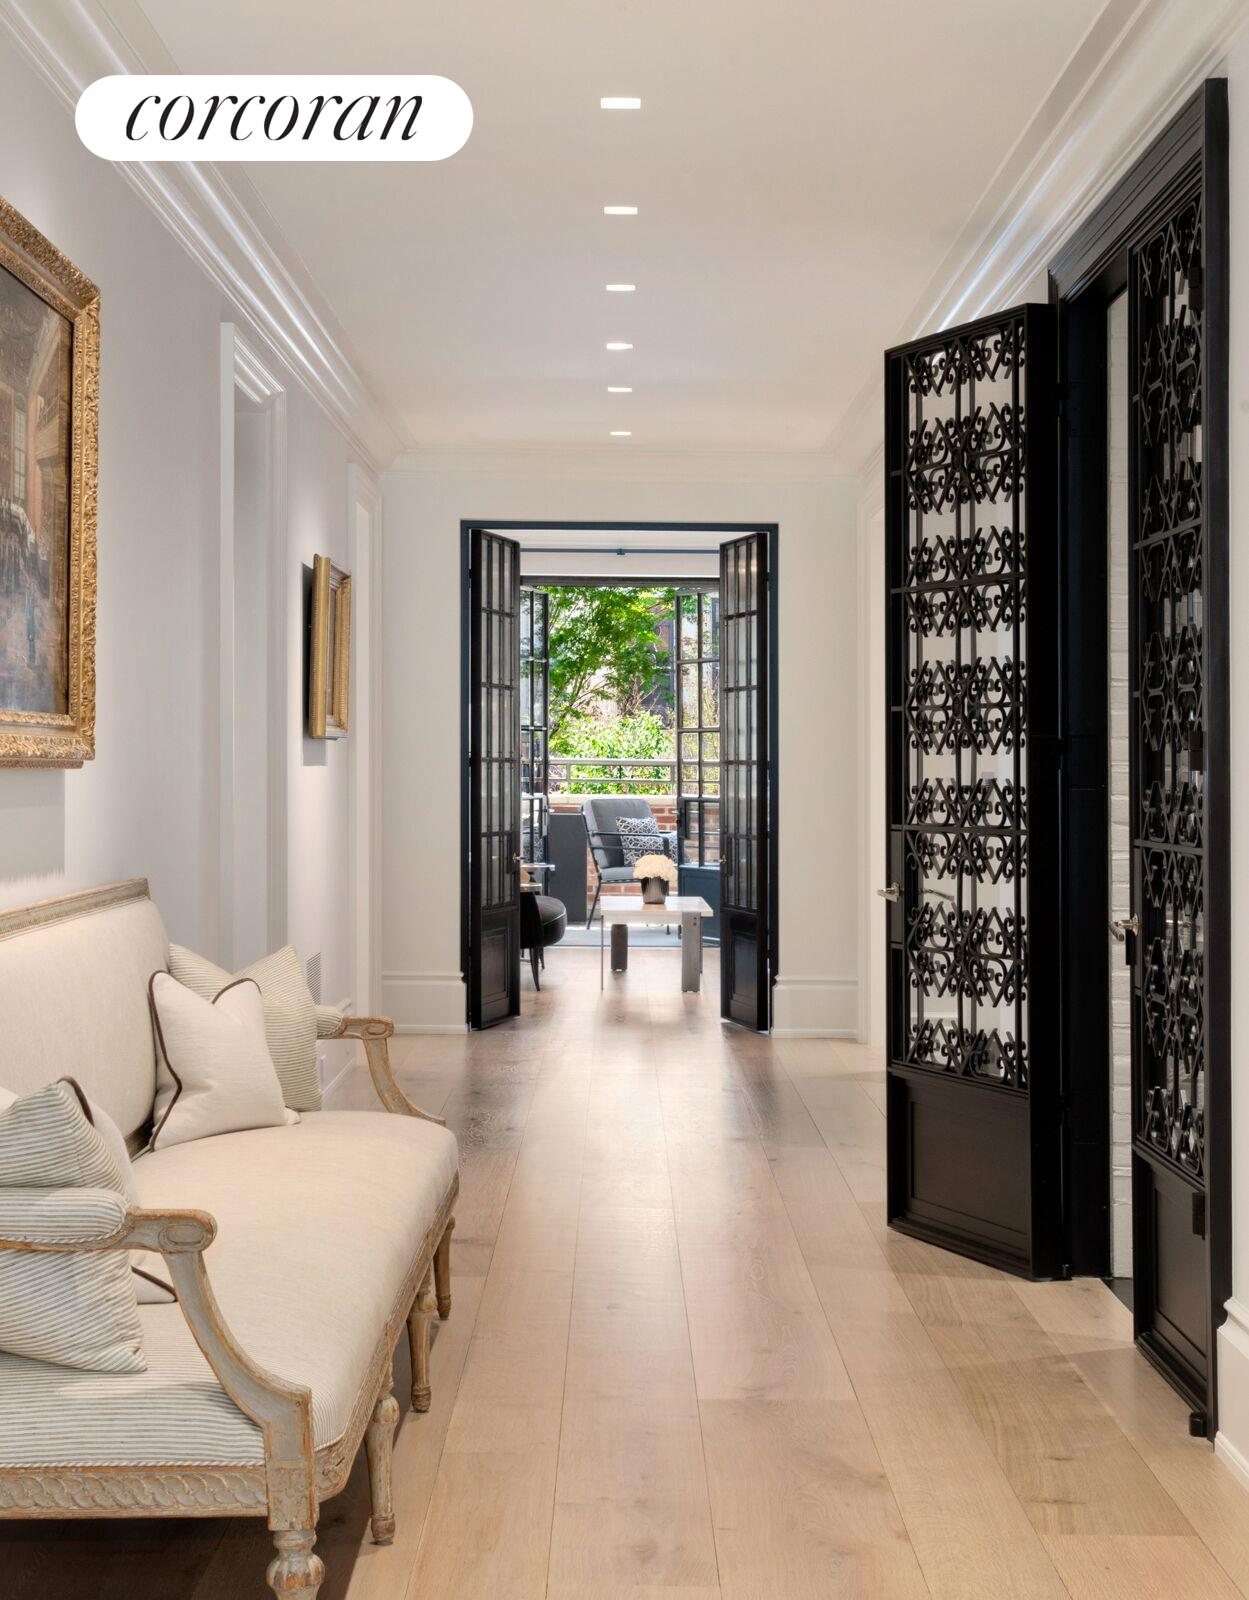 421 Broome Street, Penthouse, Entry